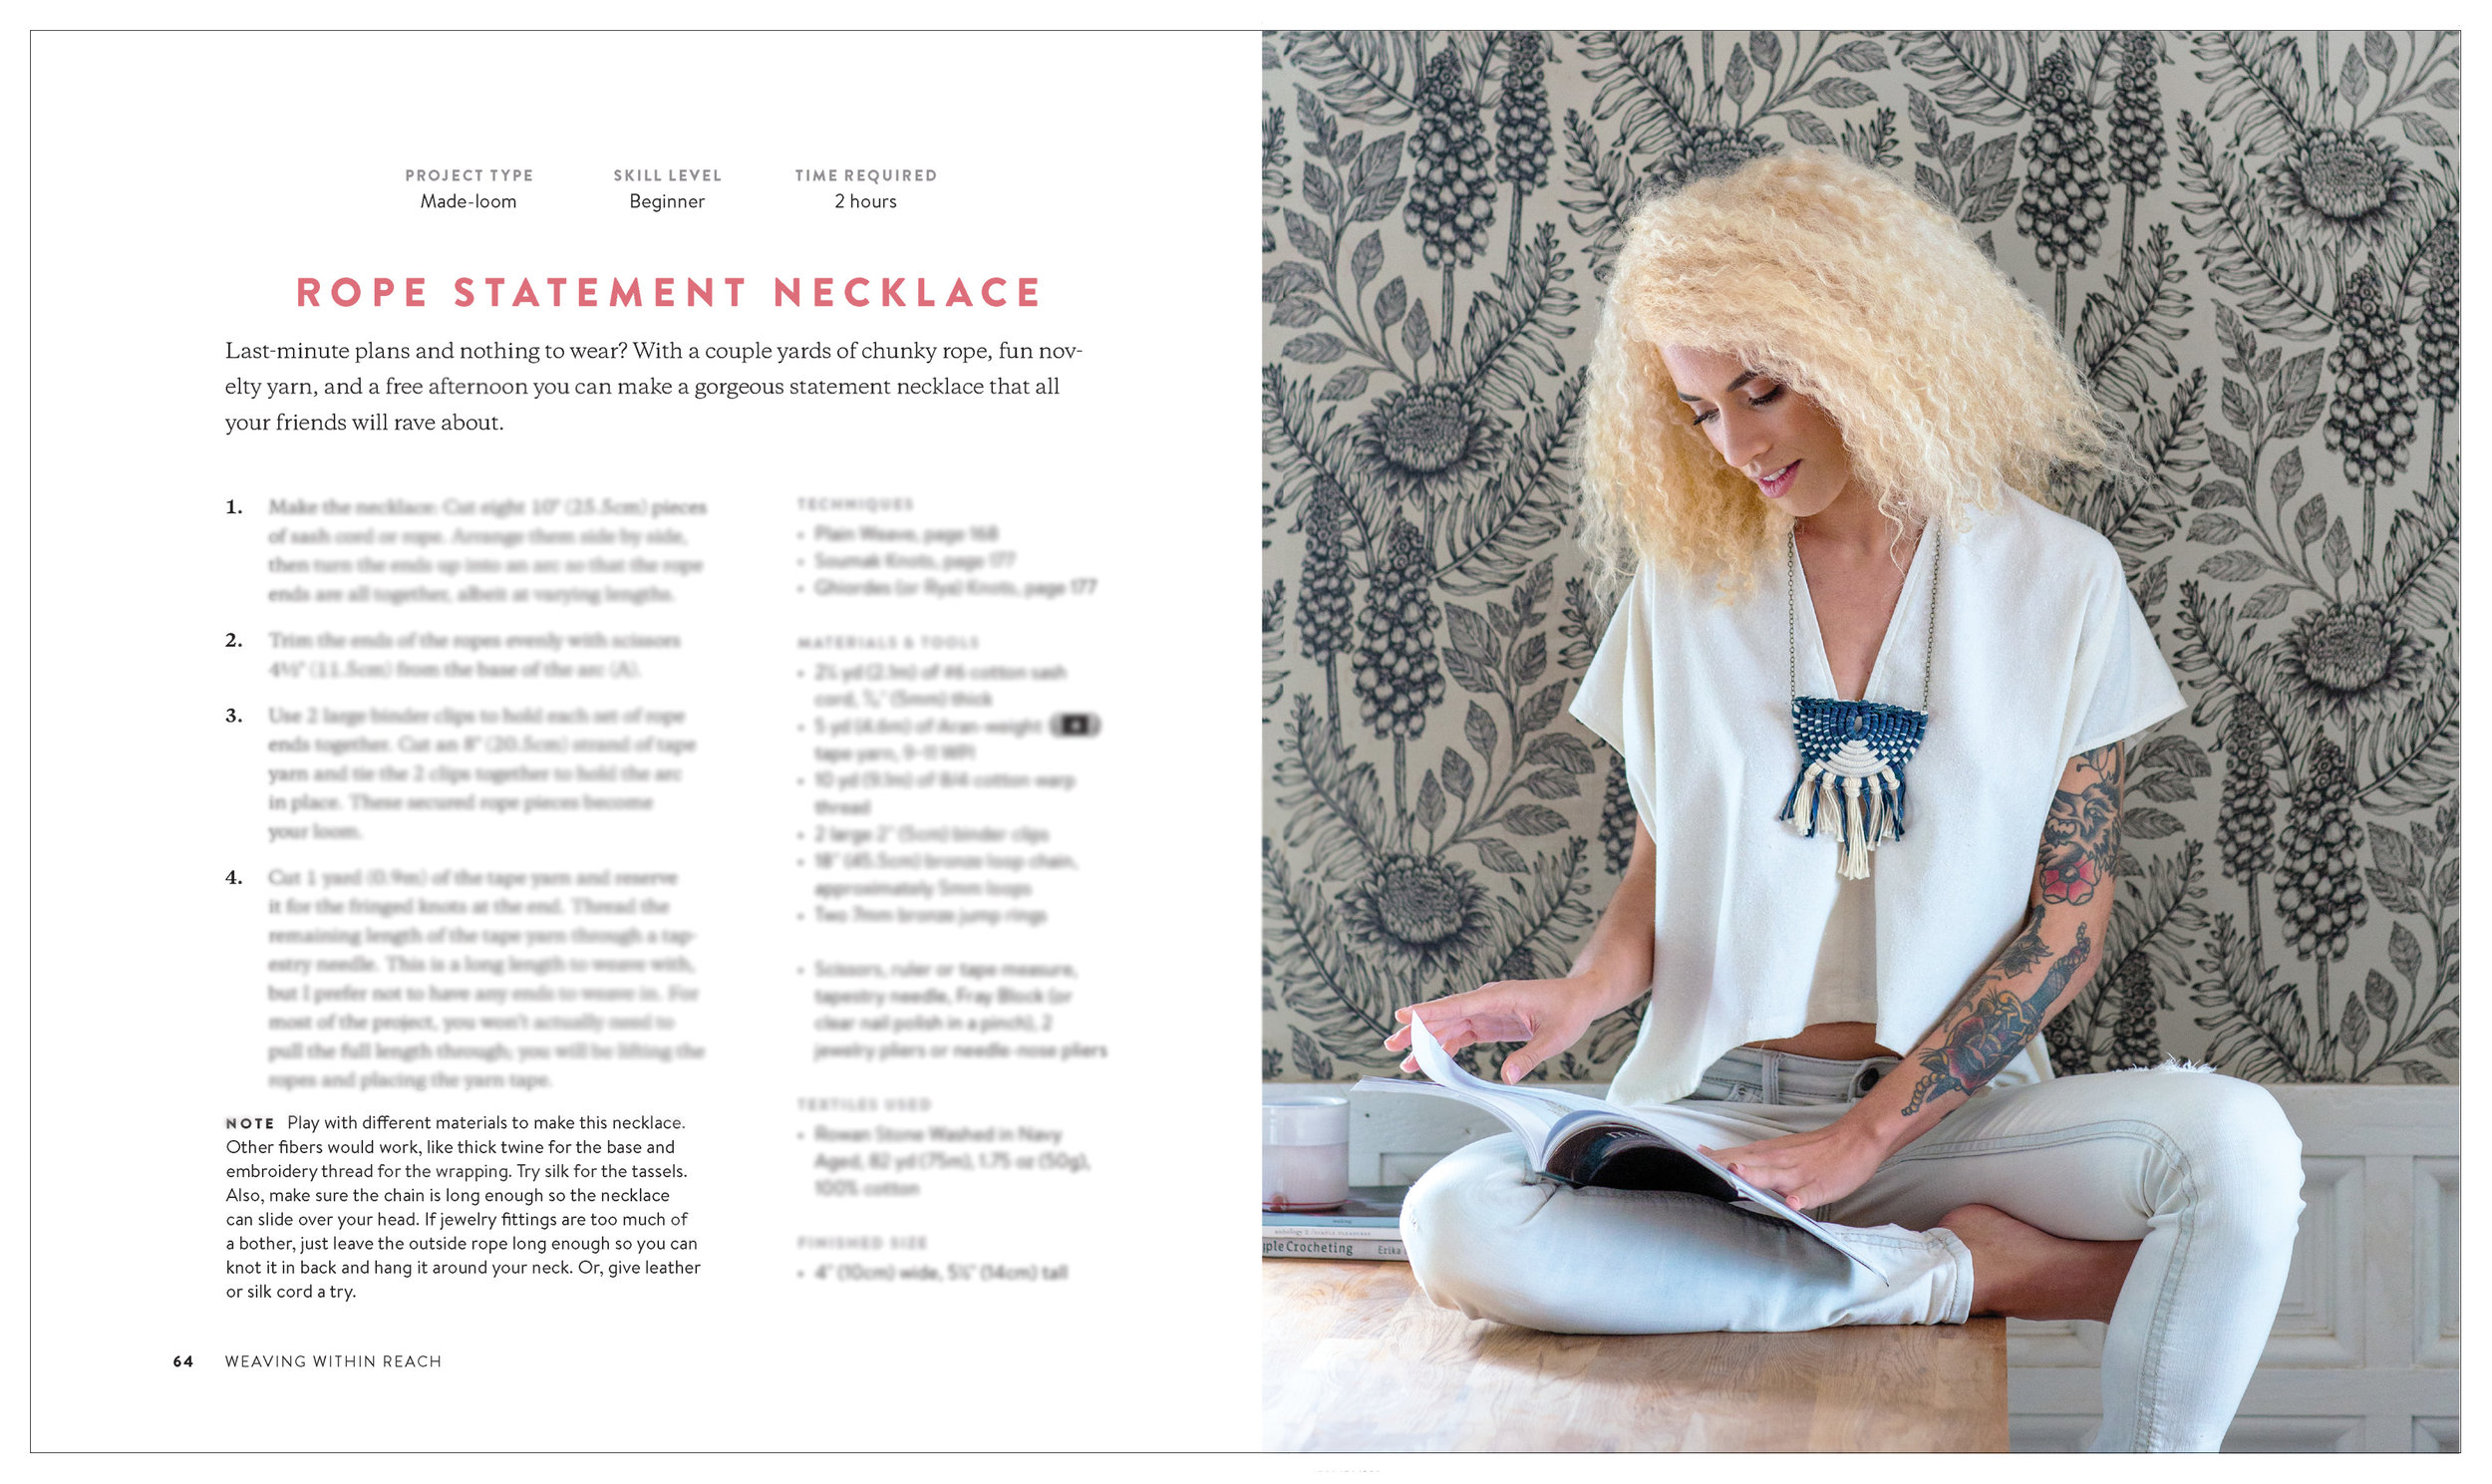 Sample spread of Anne Weil's book Weaving Within Reach with photography by Rebecca Stumpf Colorado Lifestyle Photographer Denver Boulder Editorial Commercial Photographer.